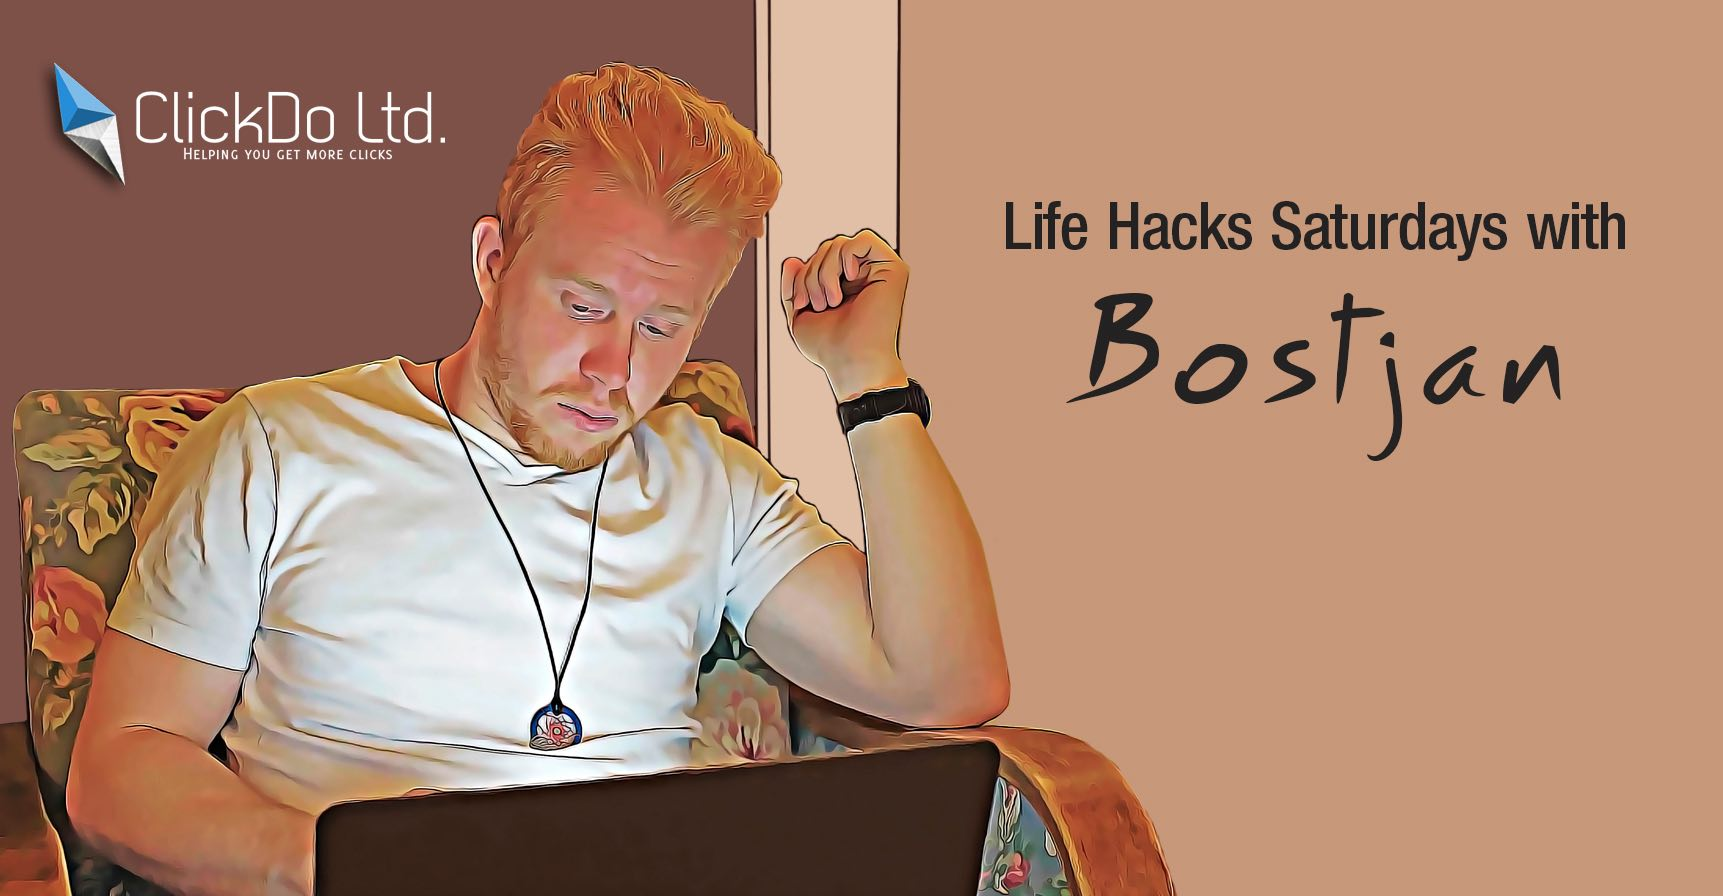 https://clickdo.co.uk/wp-content/uploads/2016/02/Life-Hacks-Saturdays-with-Bostjan.jpg